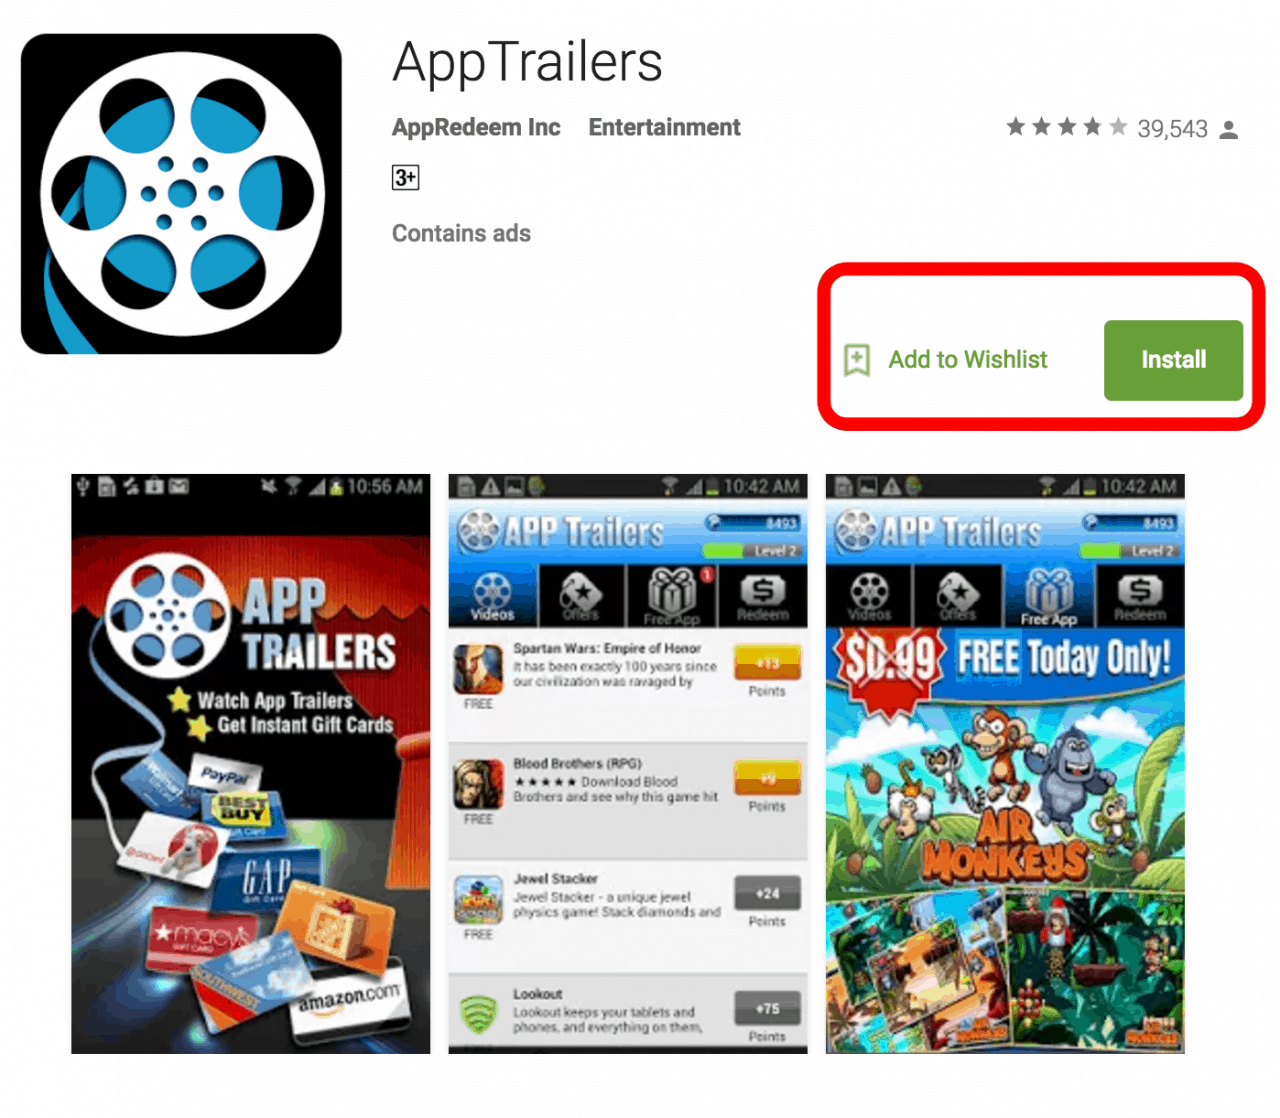 apptrailers-android-iphone-smartphone-earning-money-way-app